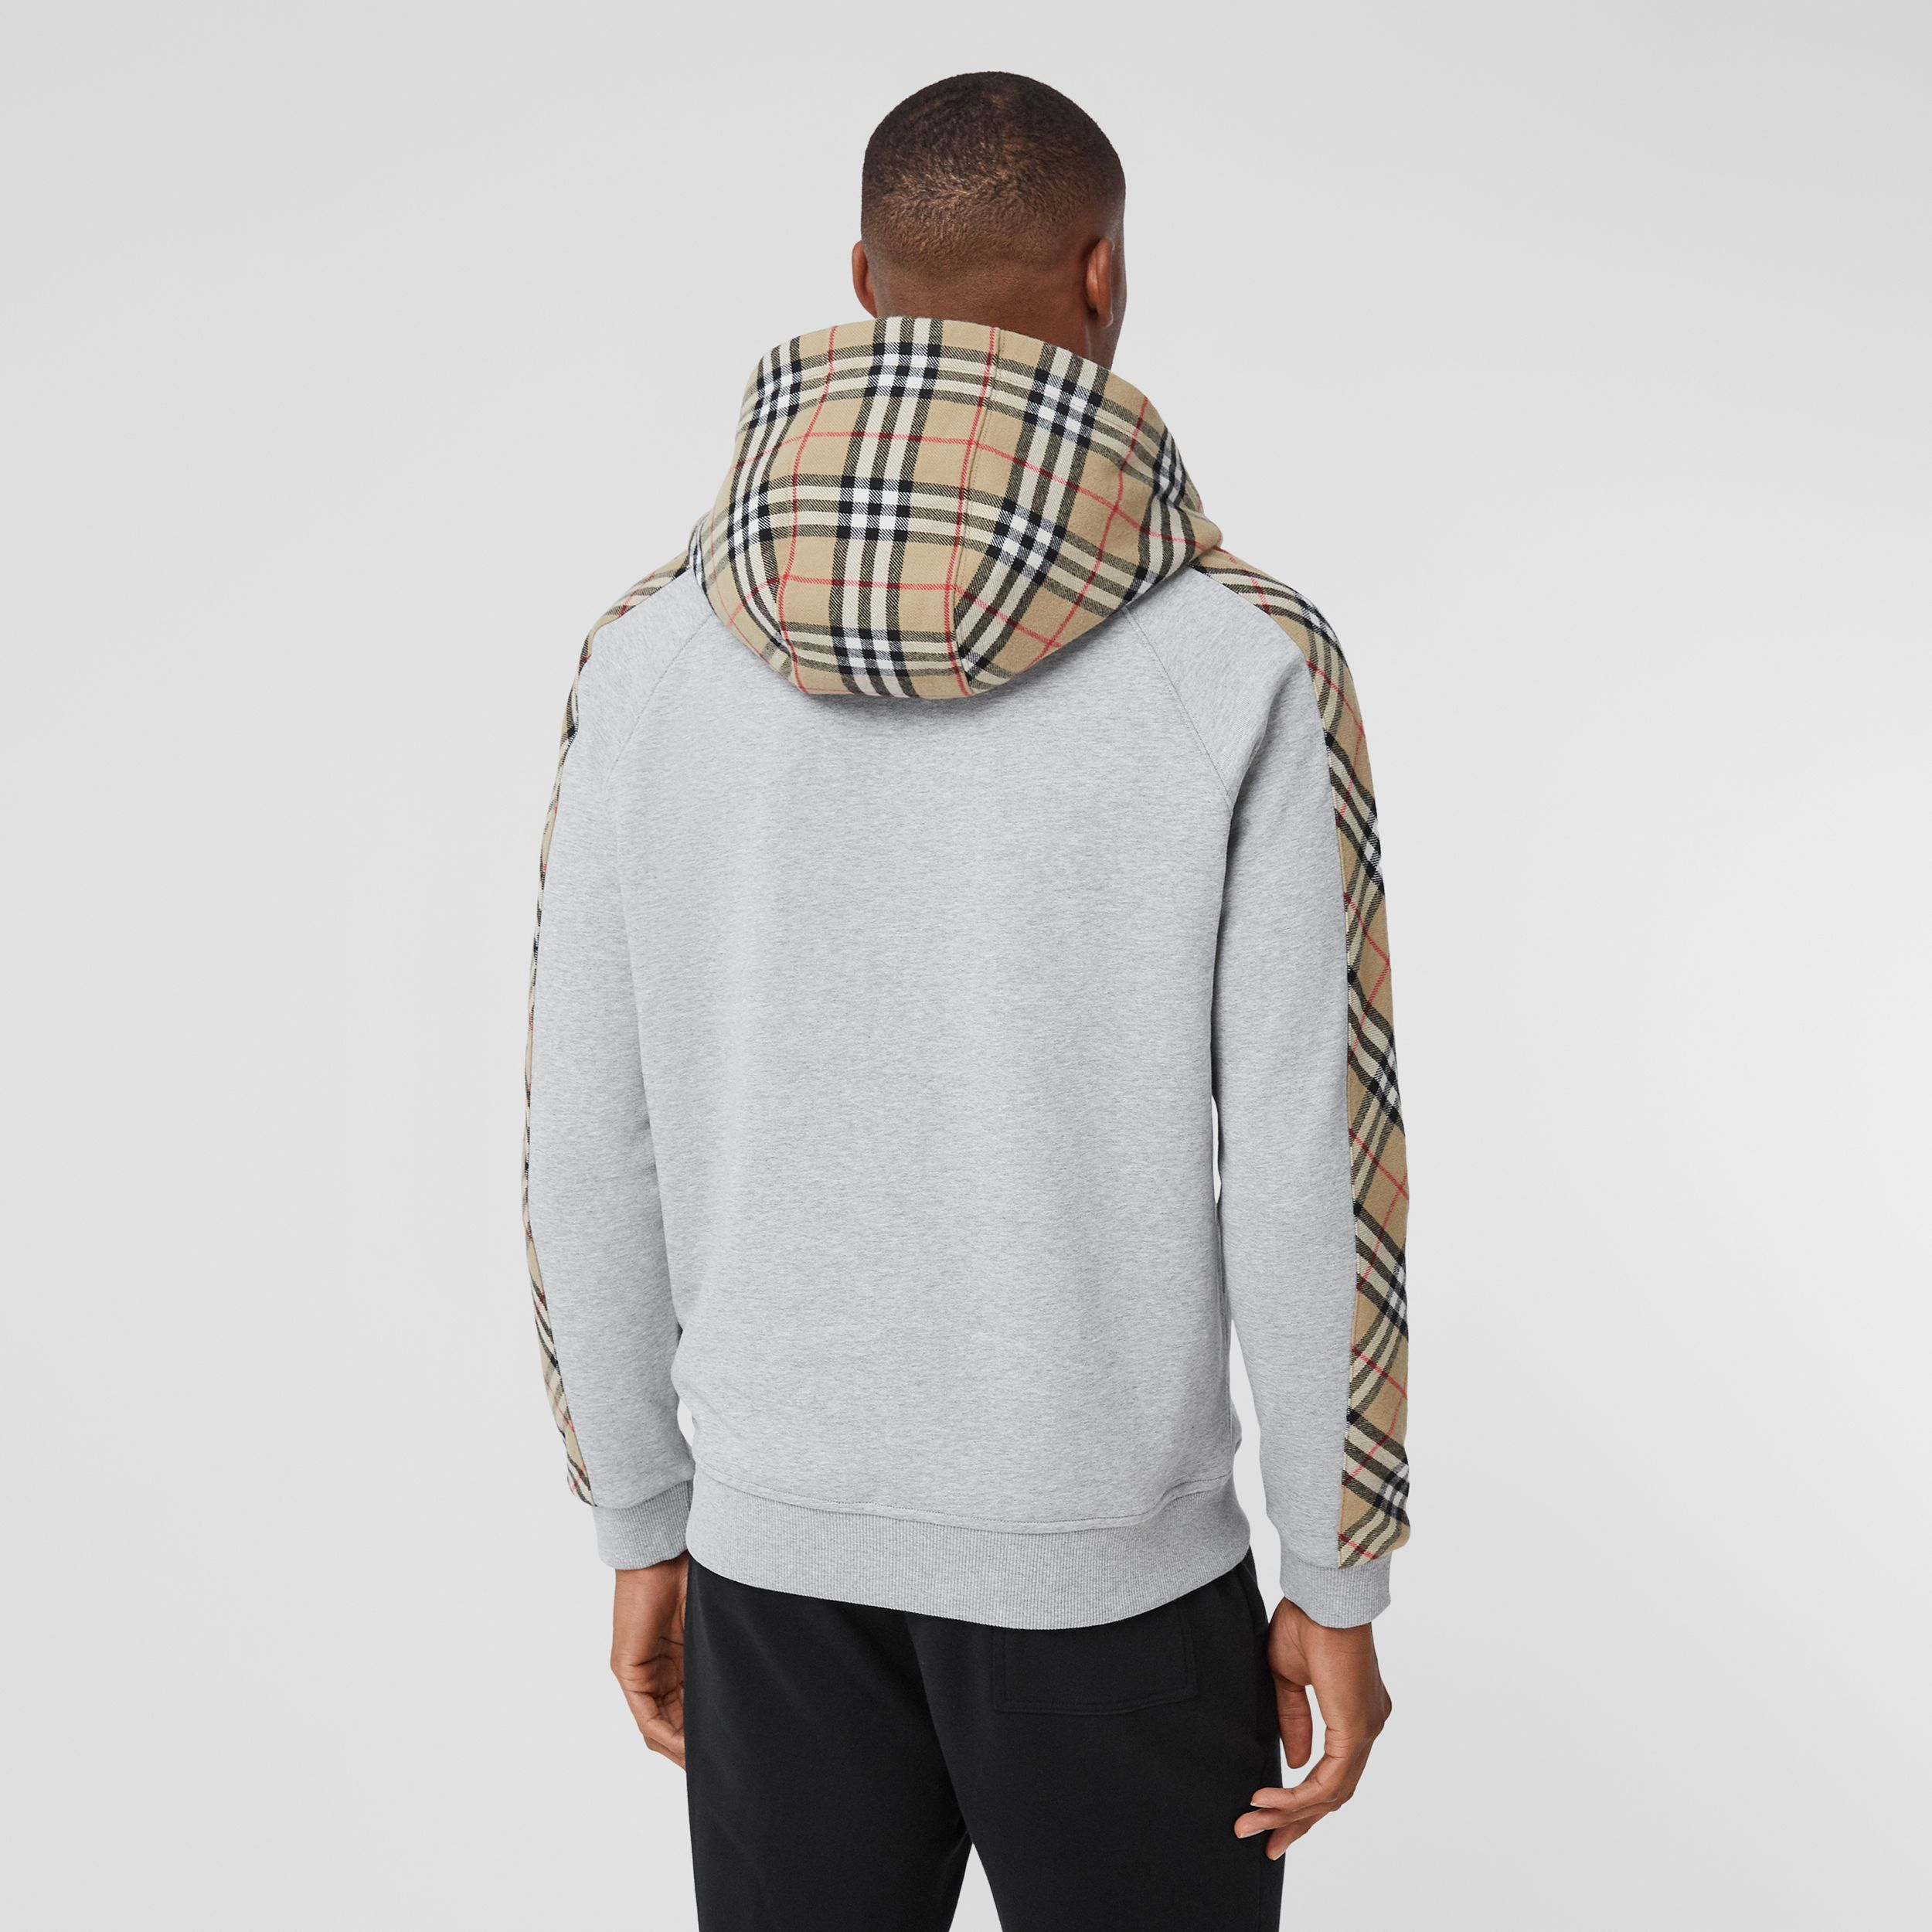 Vintage Check Panel Cotton Hooded Top in Pale Grey Melange - Men | Burberry Hong Kong S.A.R. - 3